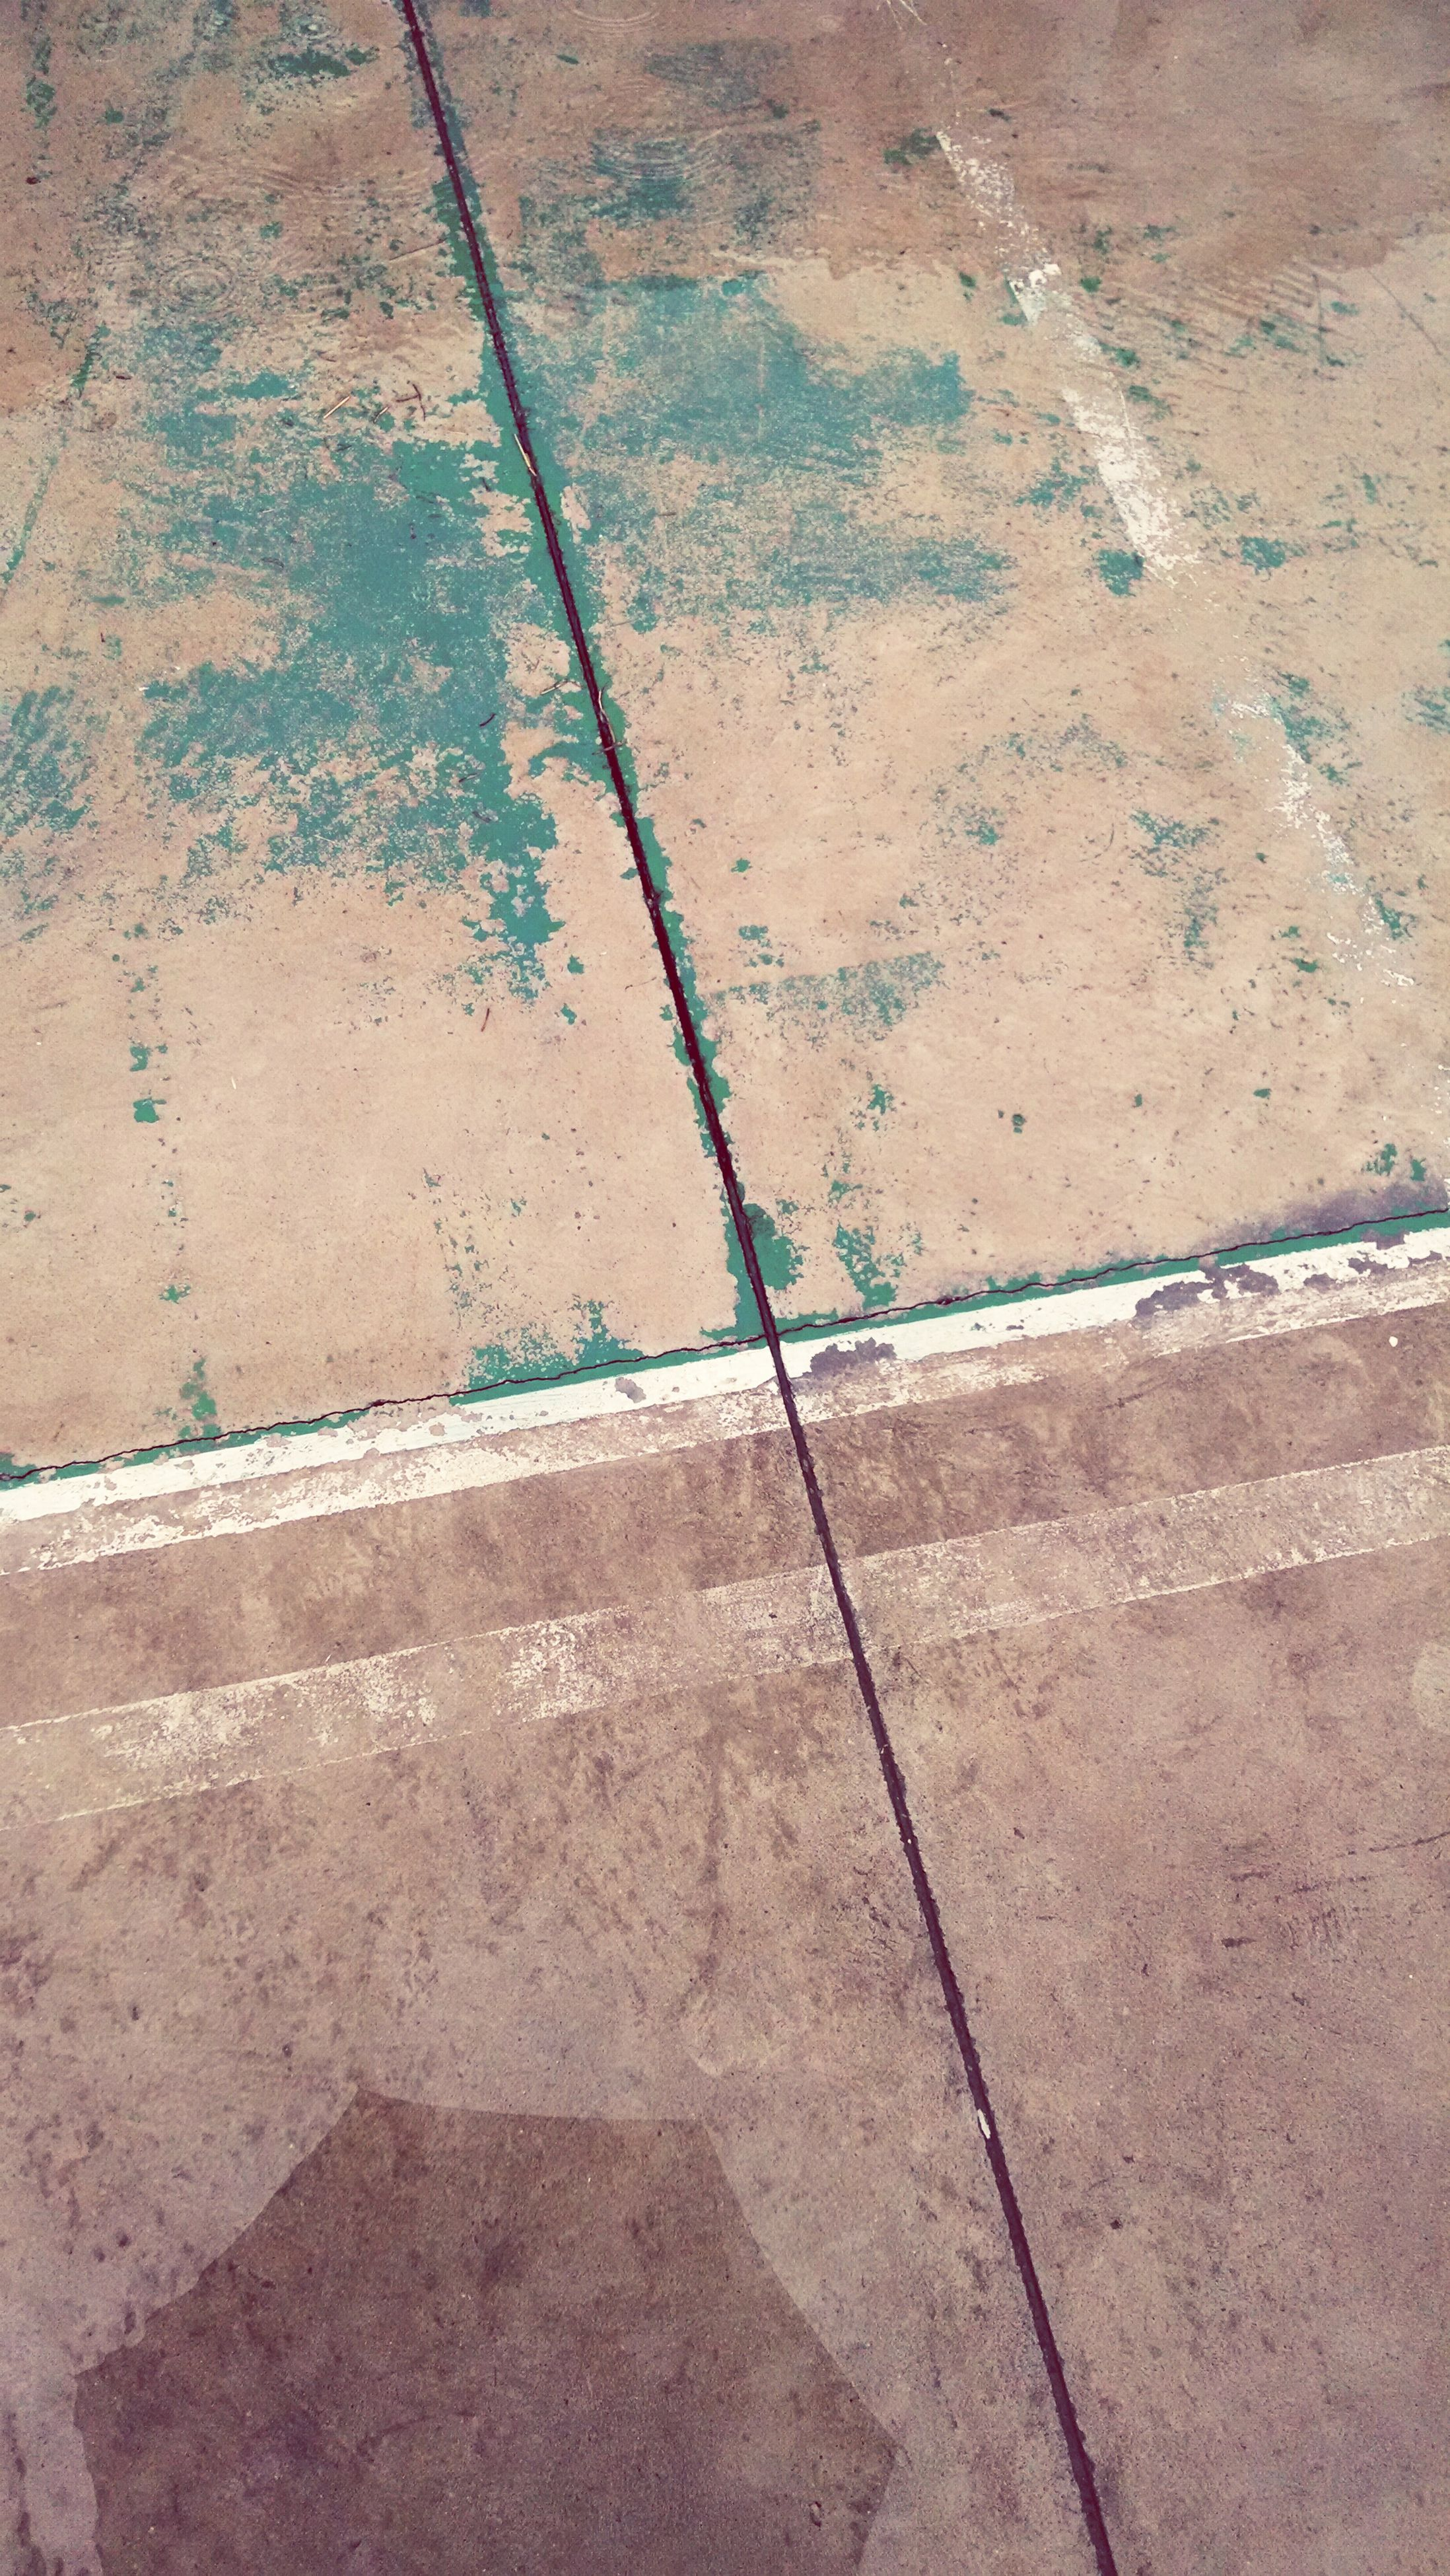 full frame, backgrounds, textured, pattern, wall - building feature, high angle view, close-up, built structure, no people, day, architecture, outdoors, wall, sunlight, cracked, detail, rough, concrete, geometric shape, blue